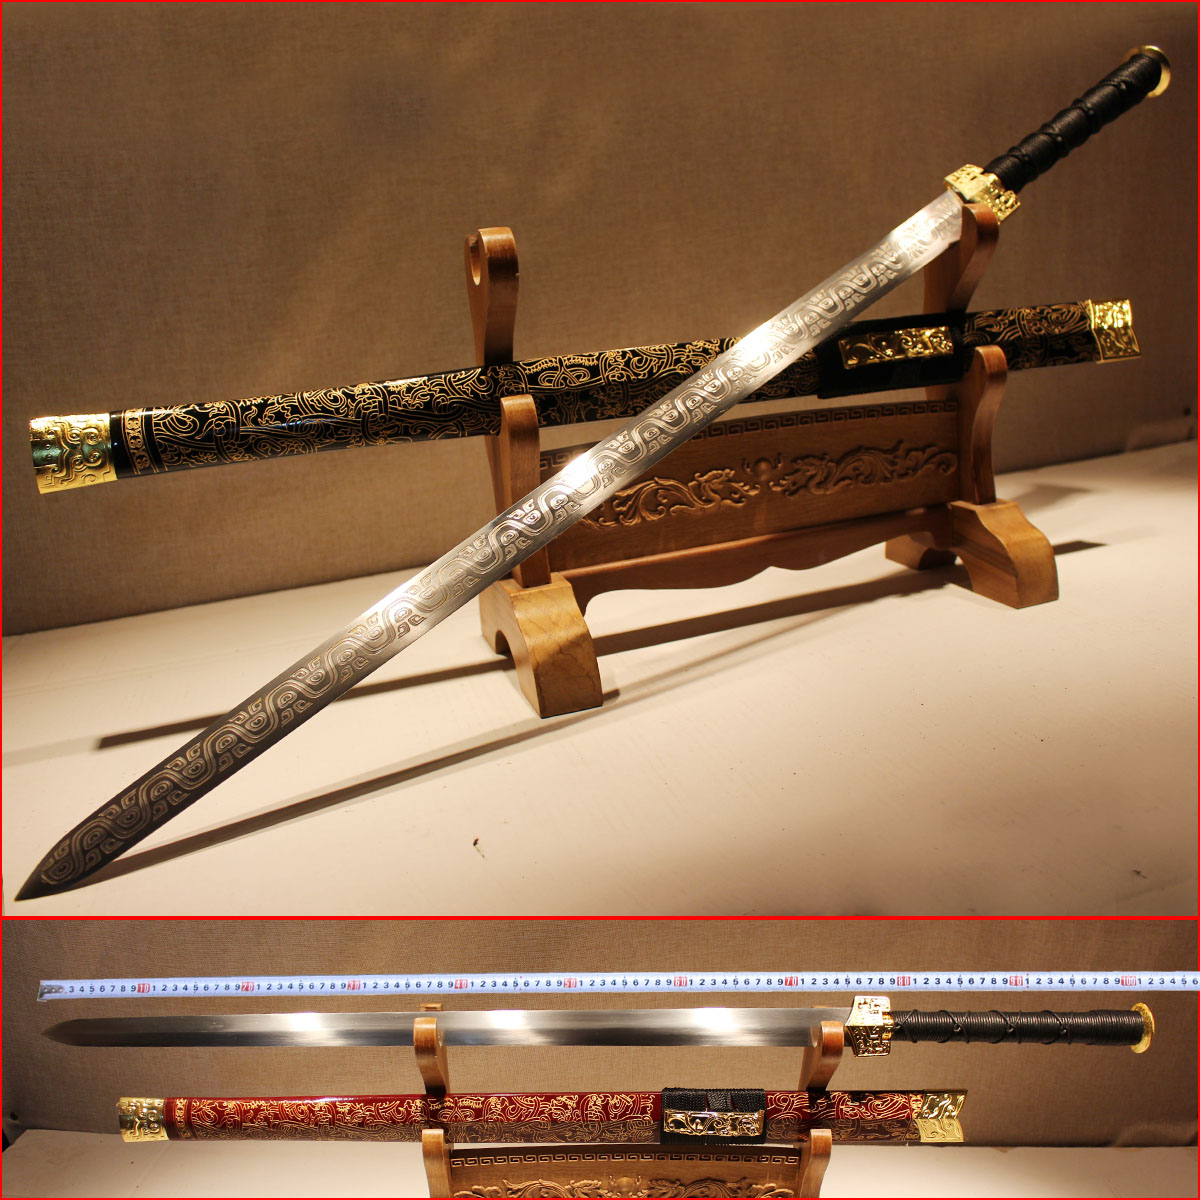 longquan ysm long han jian town curtilage sword DLC tang sword manganese steel knife self-defense forces is not edged usually